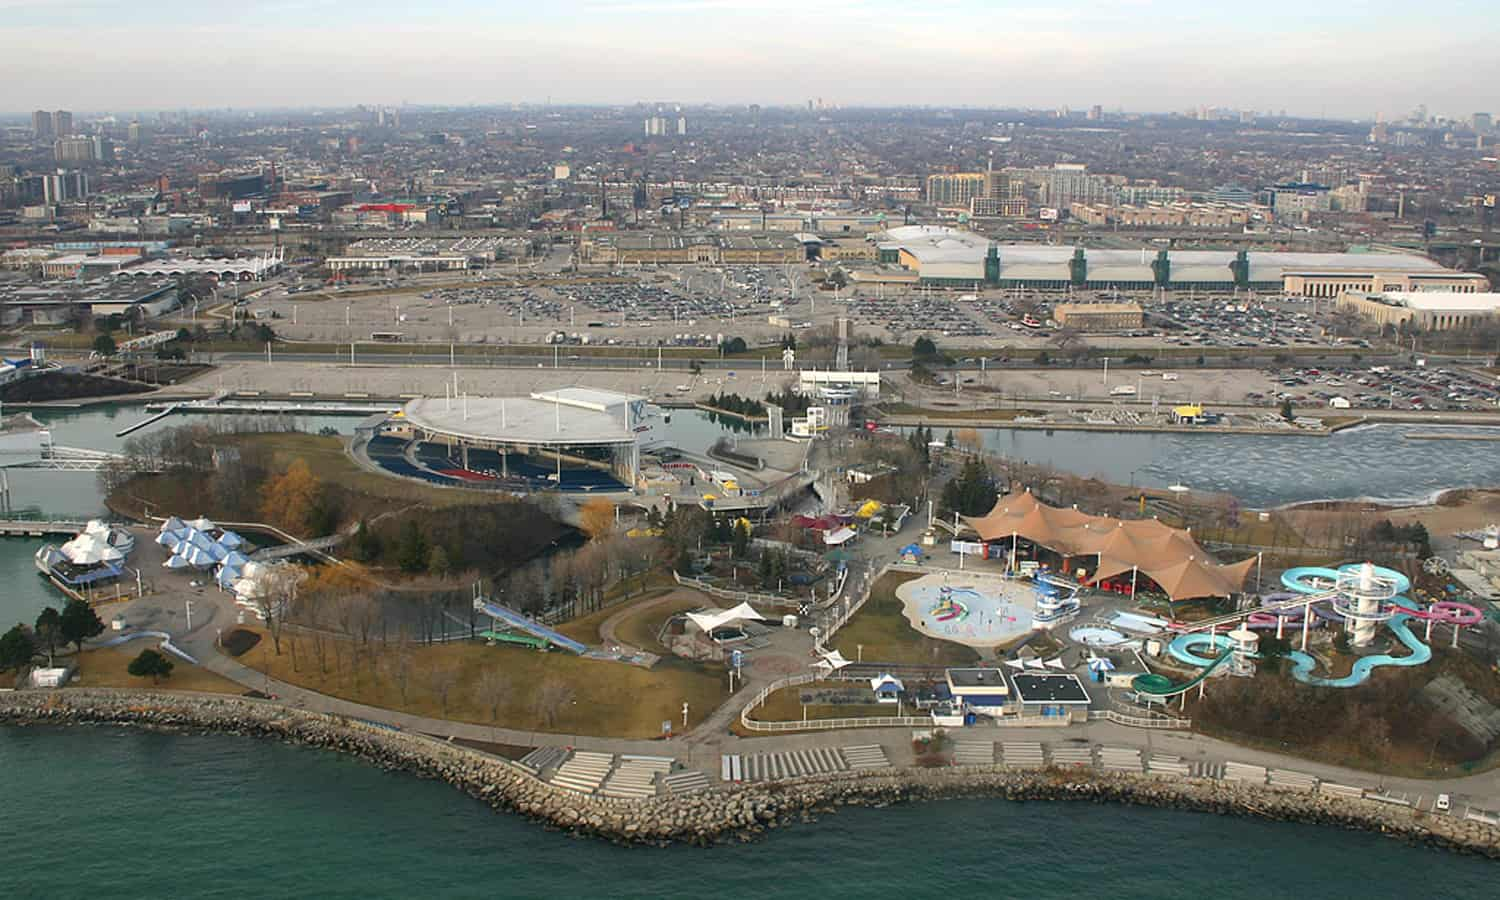 Molson Amphitheatre and Ontario Place waterpark - Wikipedia